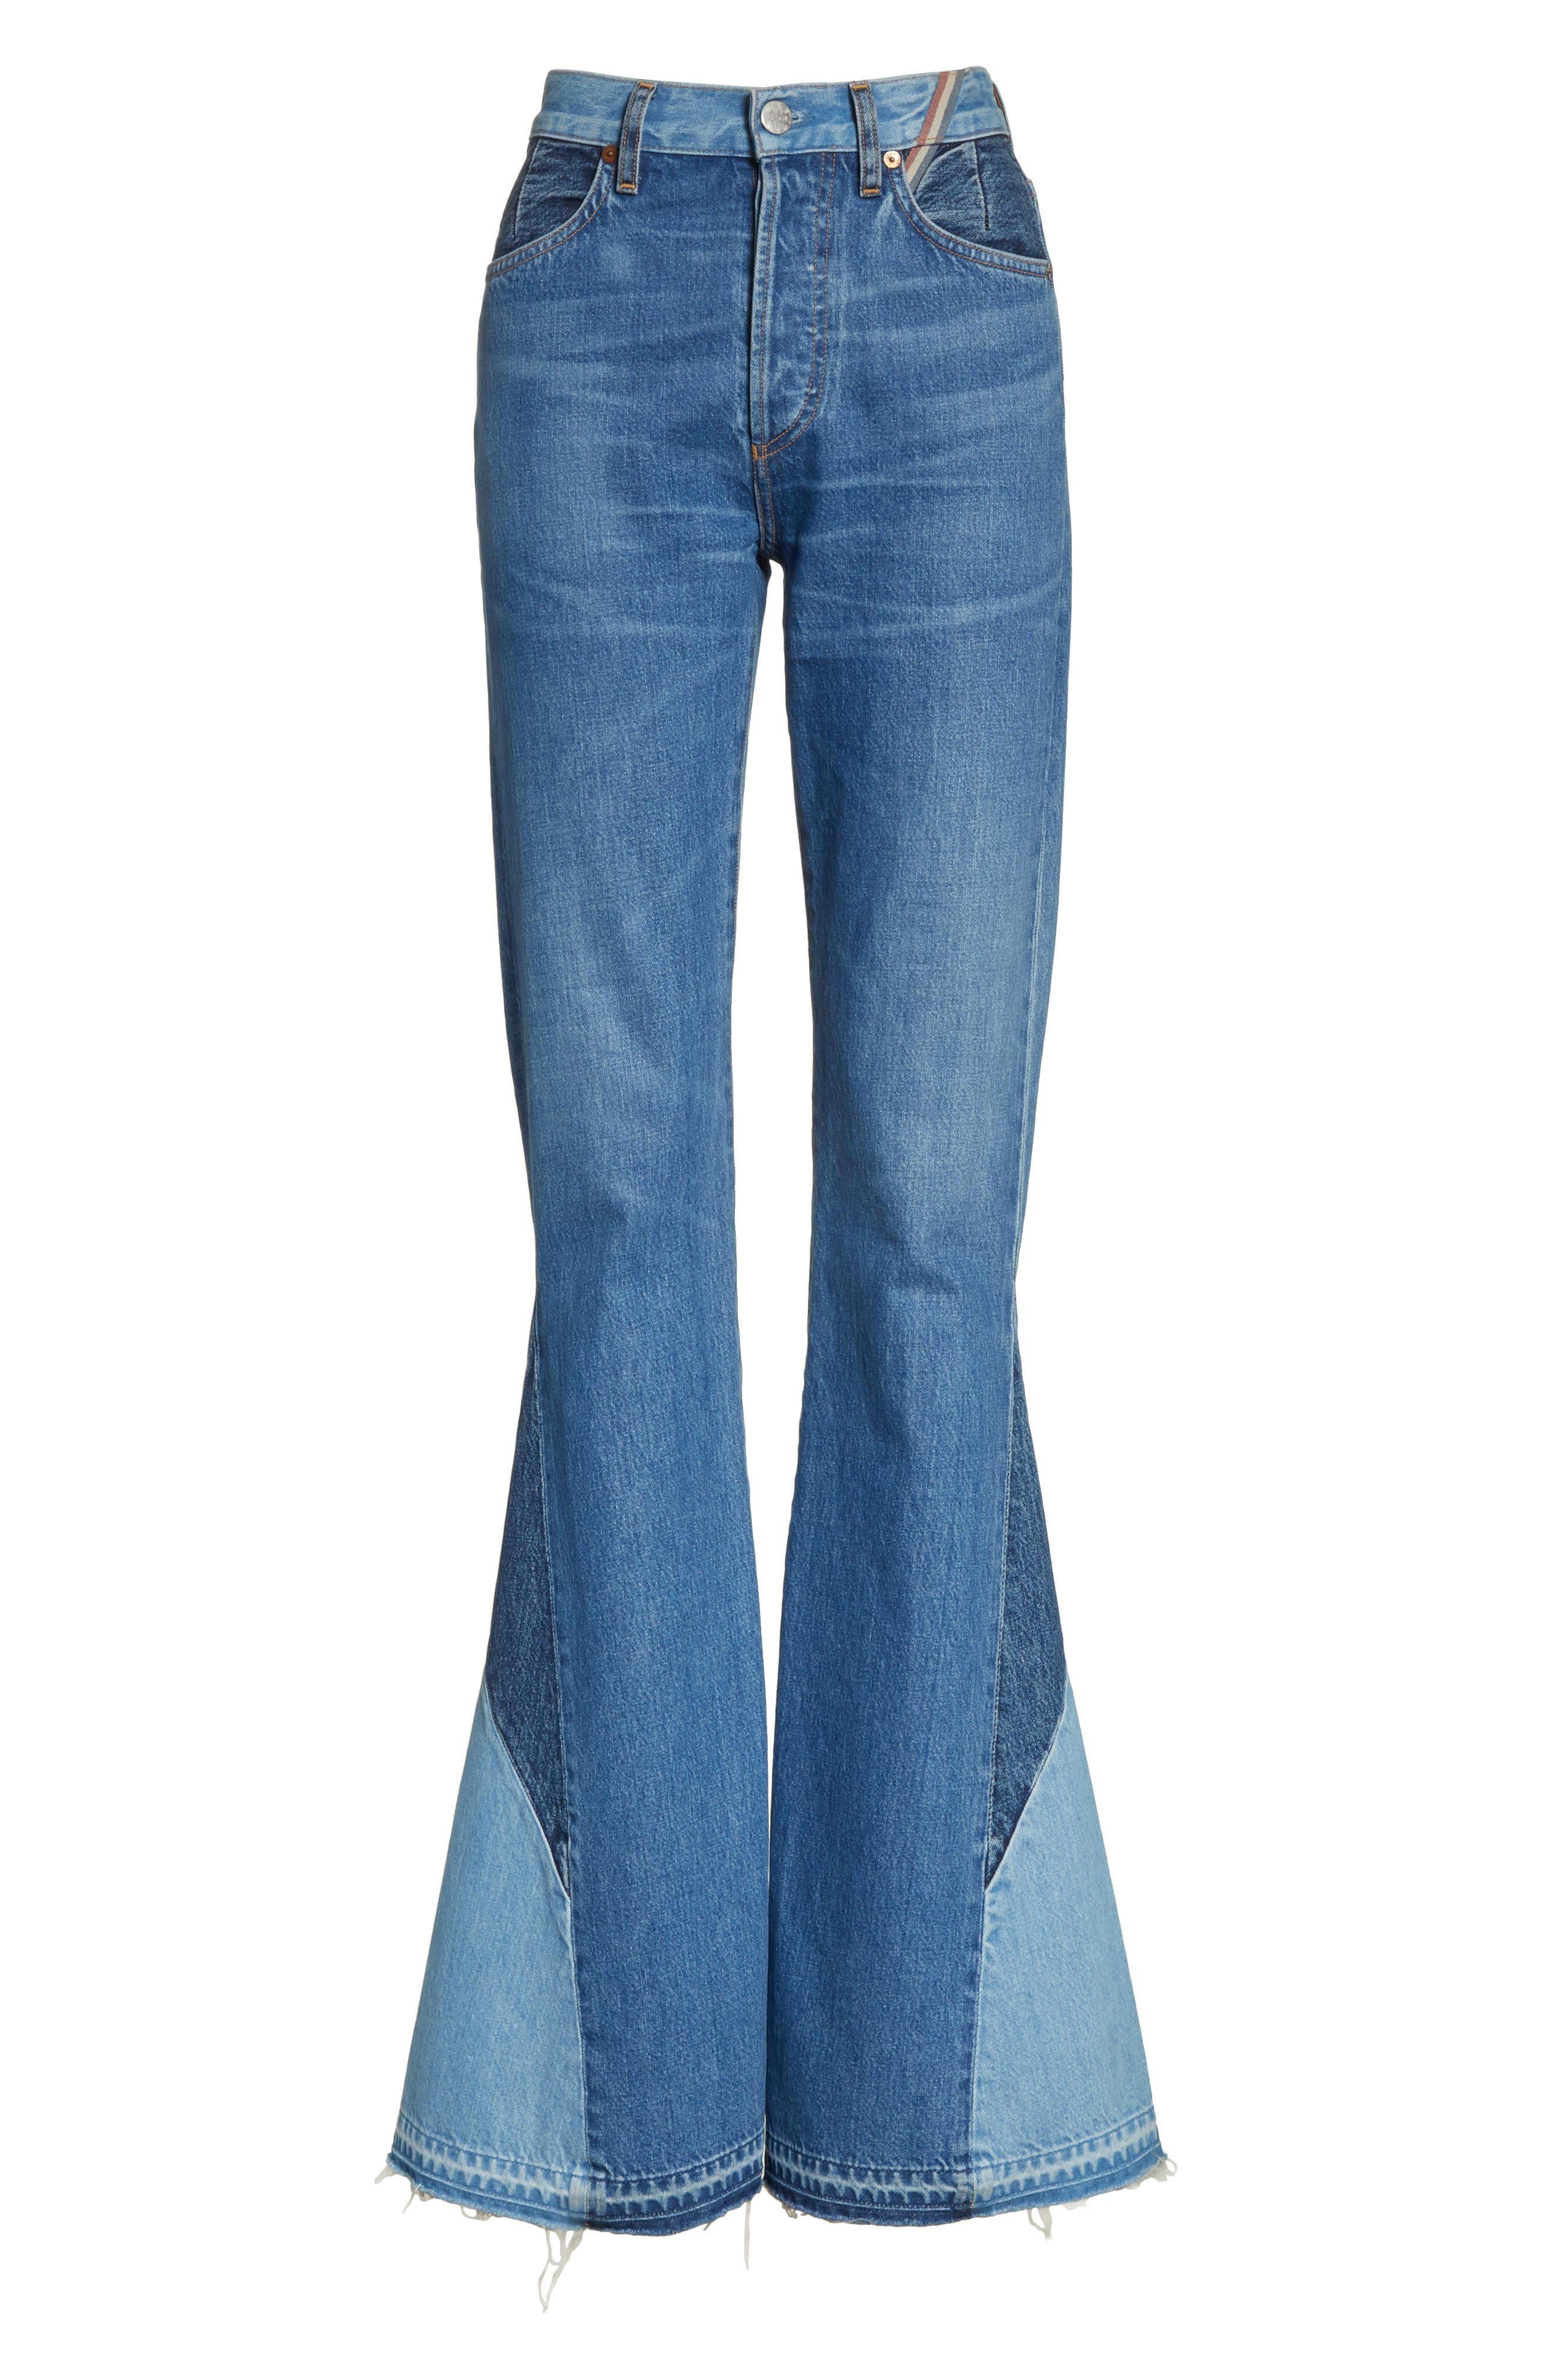 Janis High Rise Flare Jeans,                             Alternate thumbnail 7, color,                             JAGGER